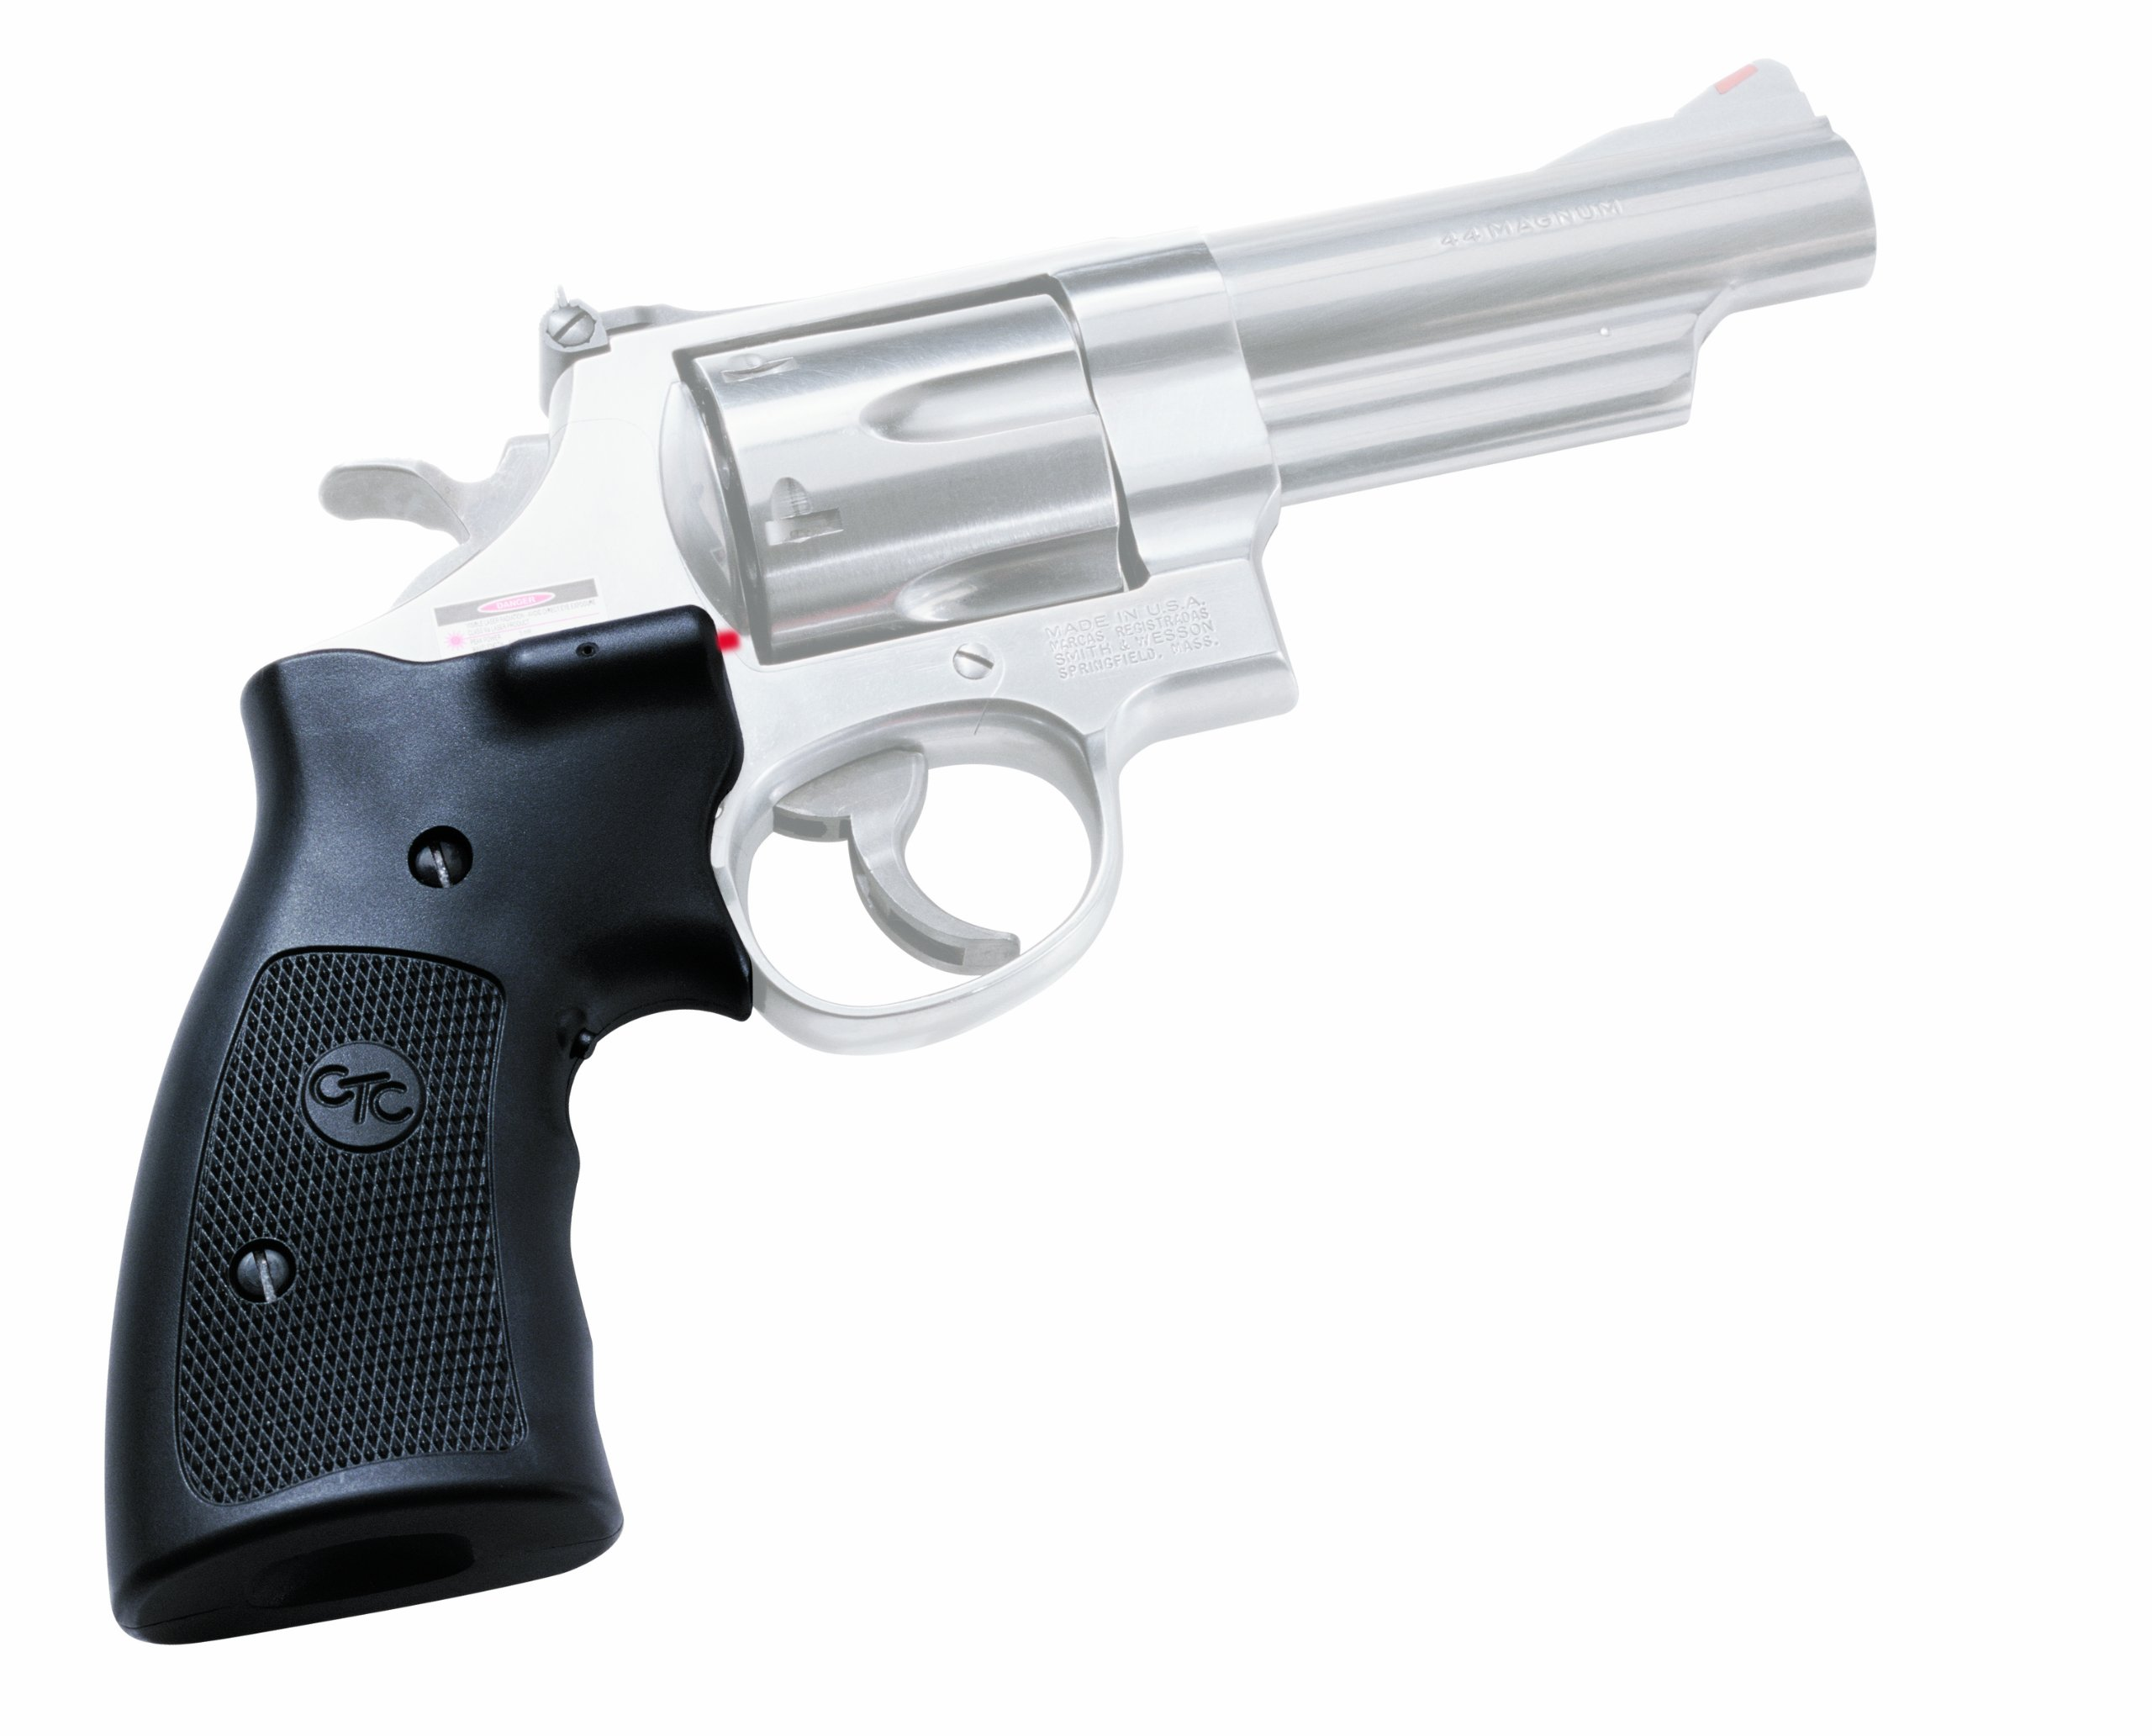 Crimson Trace LG-207 Lasergrips Red Laser Sight Grips for Smith & Wesson K. L and N Frame Revolvers